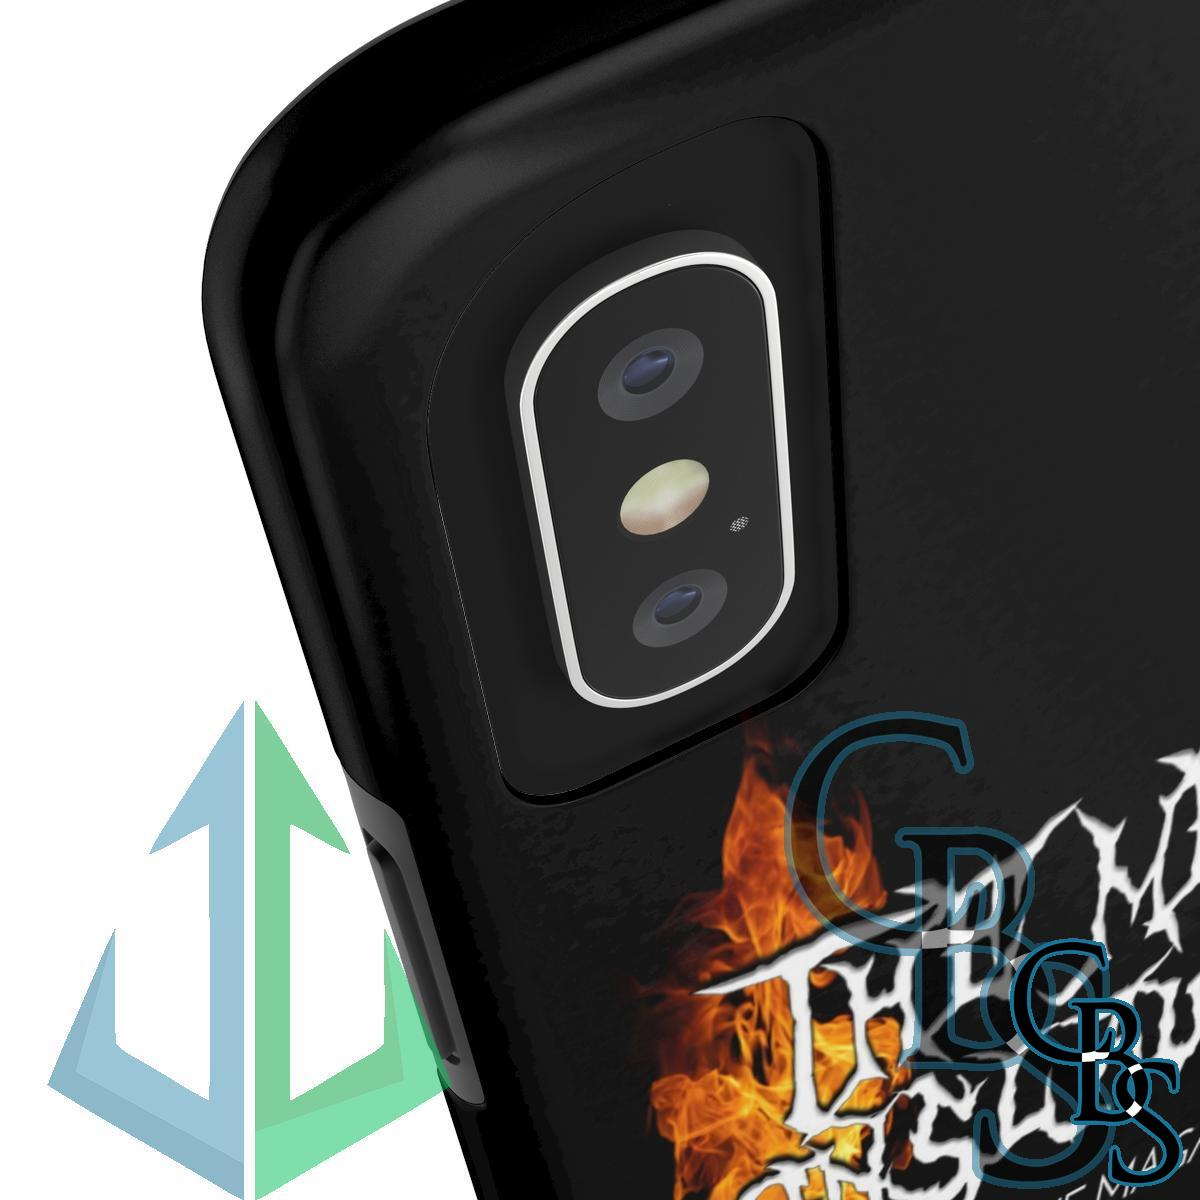 The Metal Onslaught Online Magazine Tough iPhone Cases (iPhone 7/7 Plus, iPhone 8/8 Plus, iPhone X, XS, XR, iPhone 11, 11 Pro, 11 Pro Max)